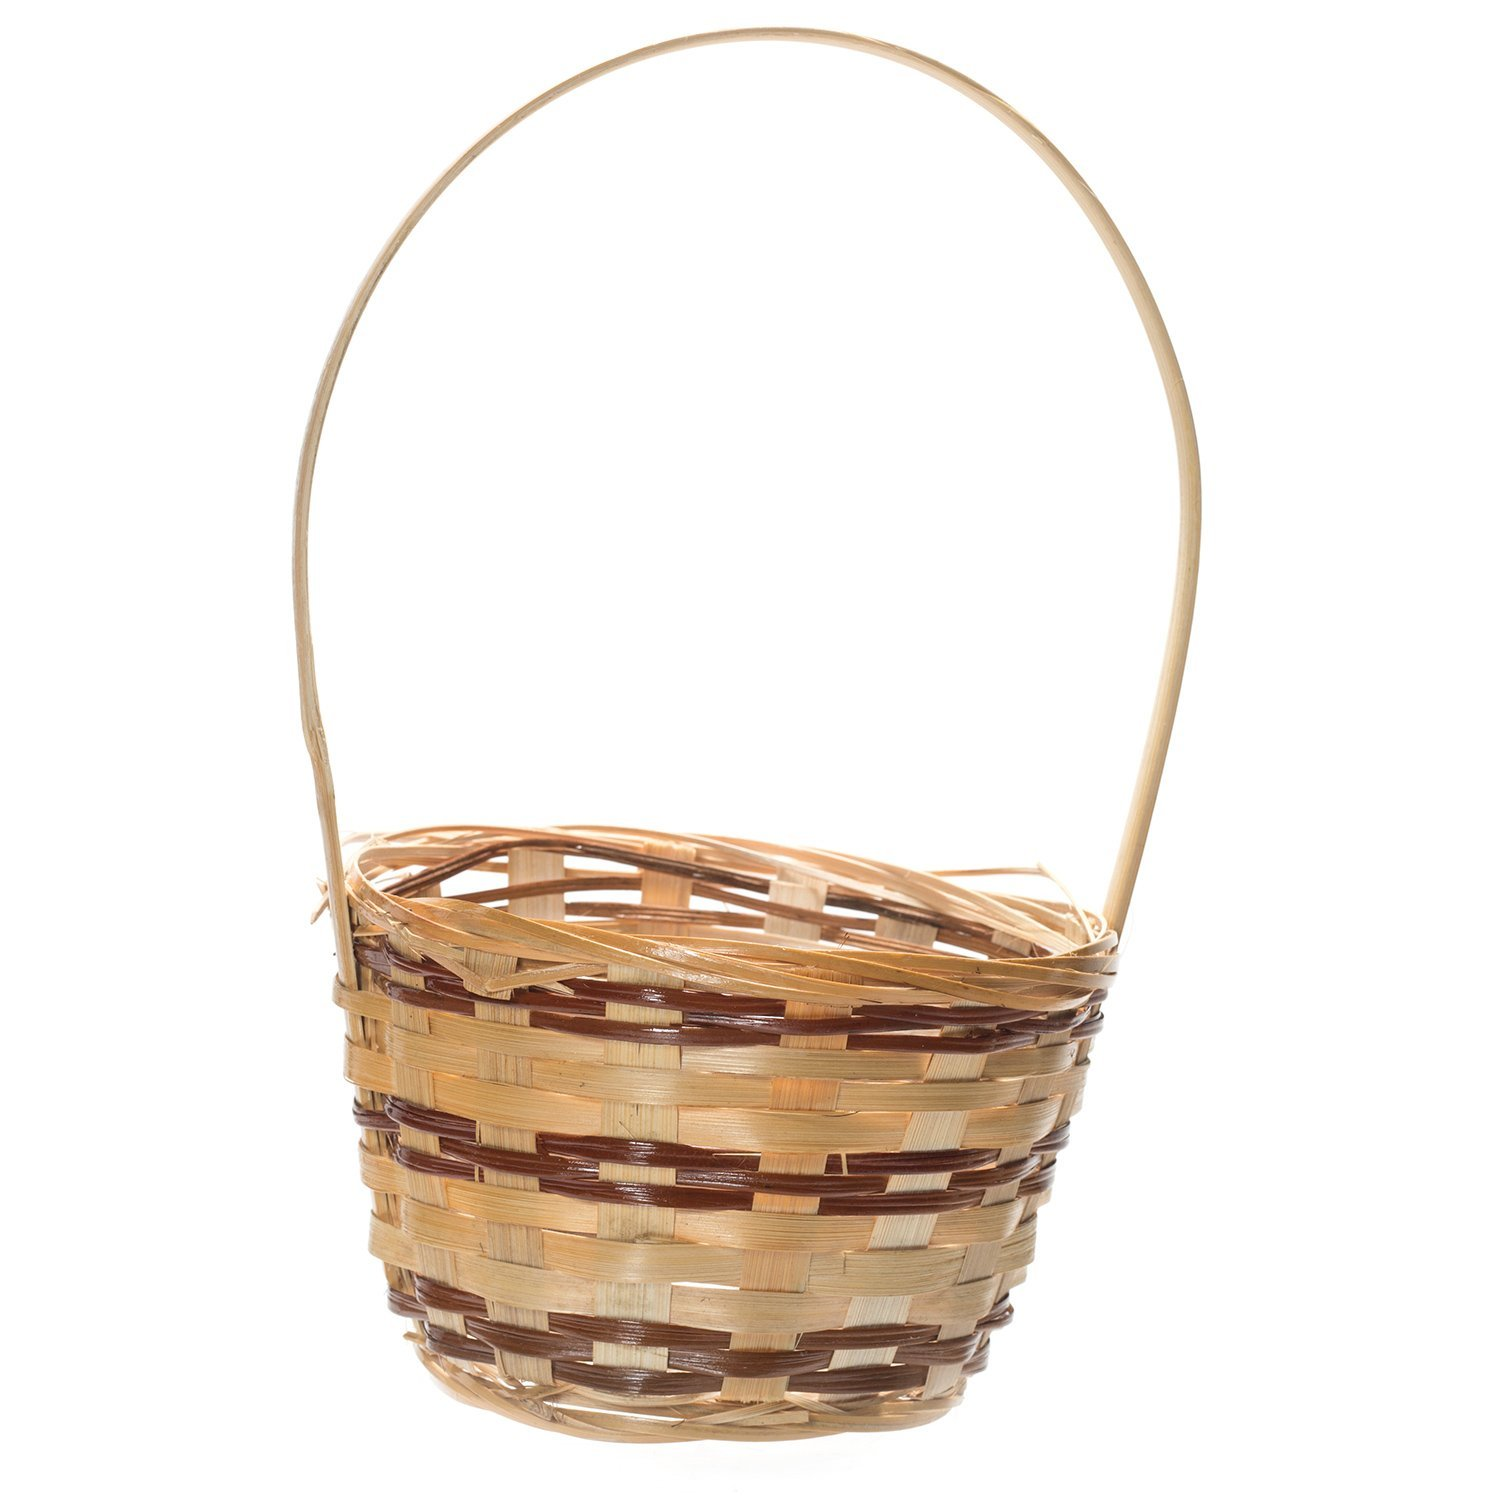 "6"" Round Natural Wicker Handwoven Gift Arrangement, Fruit or Easter Basket - 4""x6"" with Handle (includes Plastic Insert Liner) by Royal Imports"